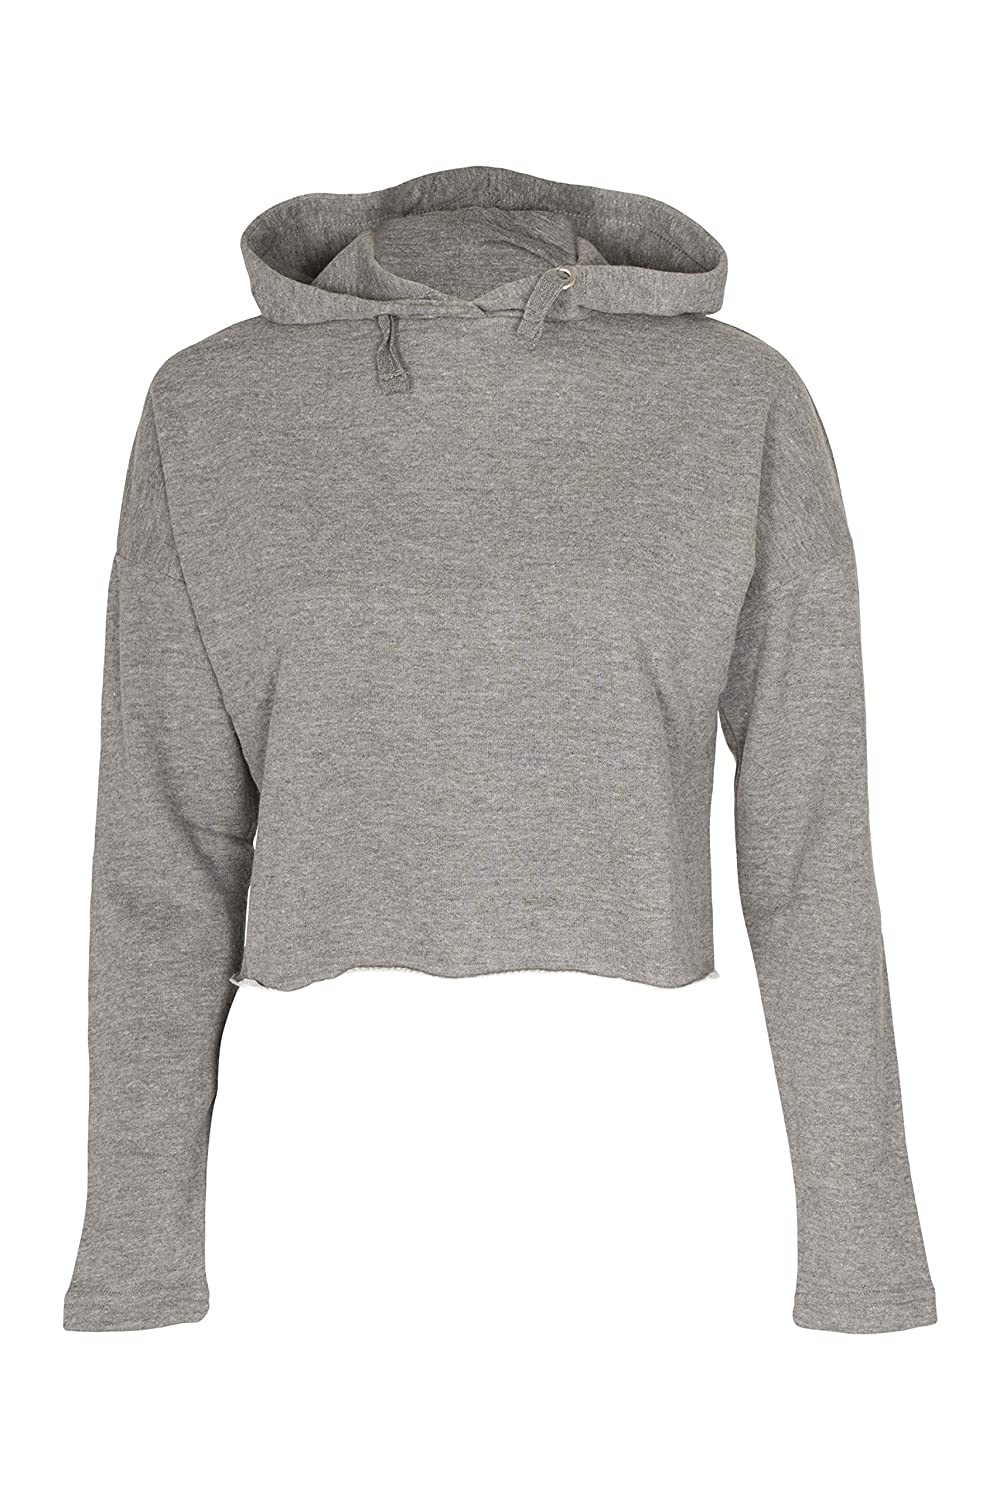 4b9e03e8b6a Amazon.com  Girls Plain Crop Top Ripped Hoodie  Clothing